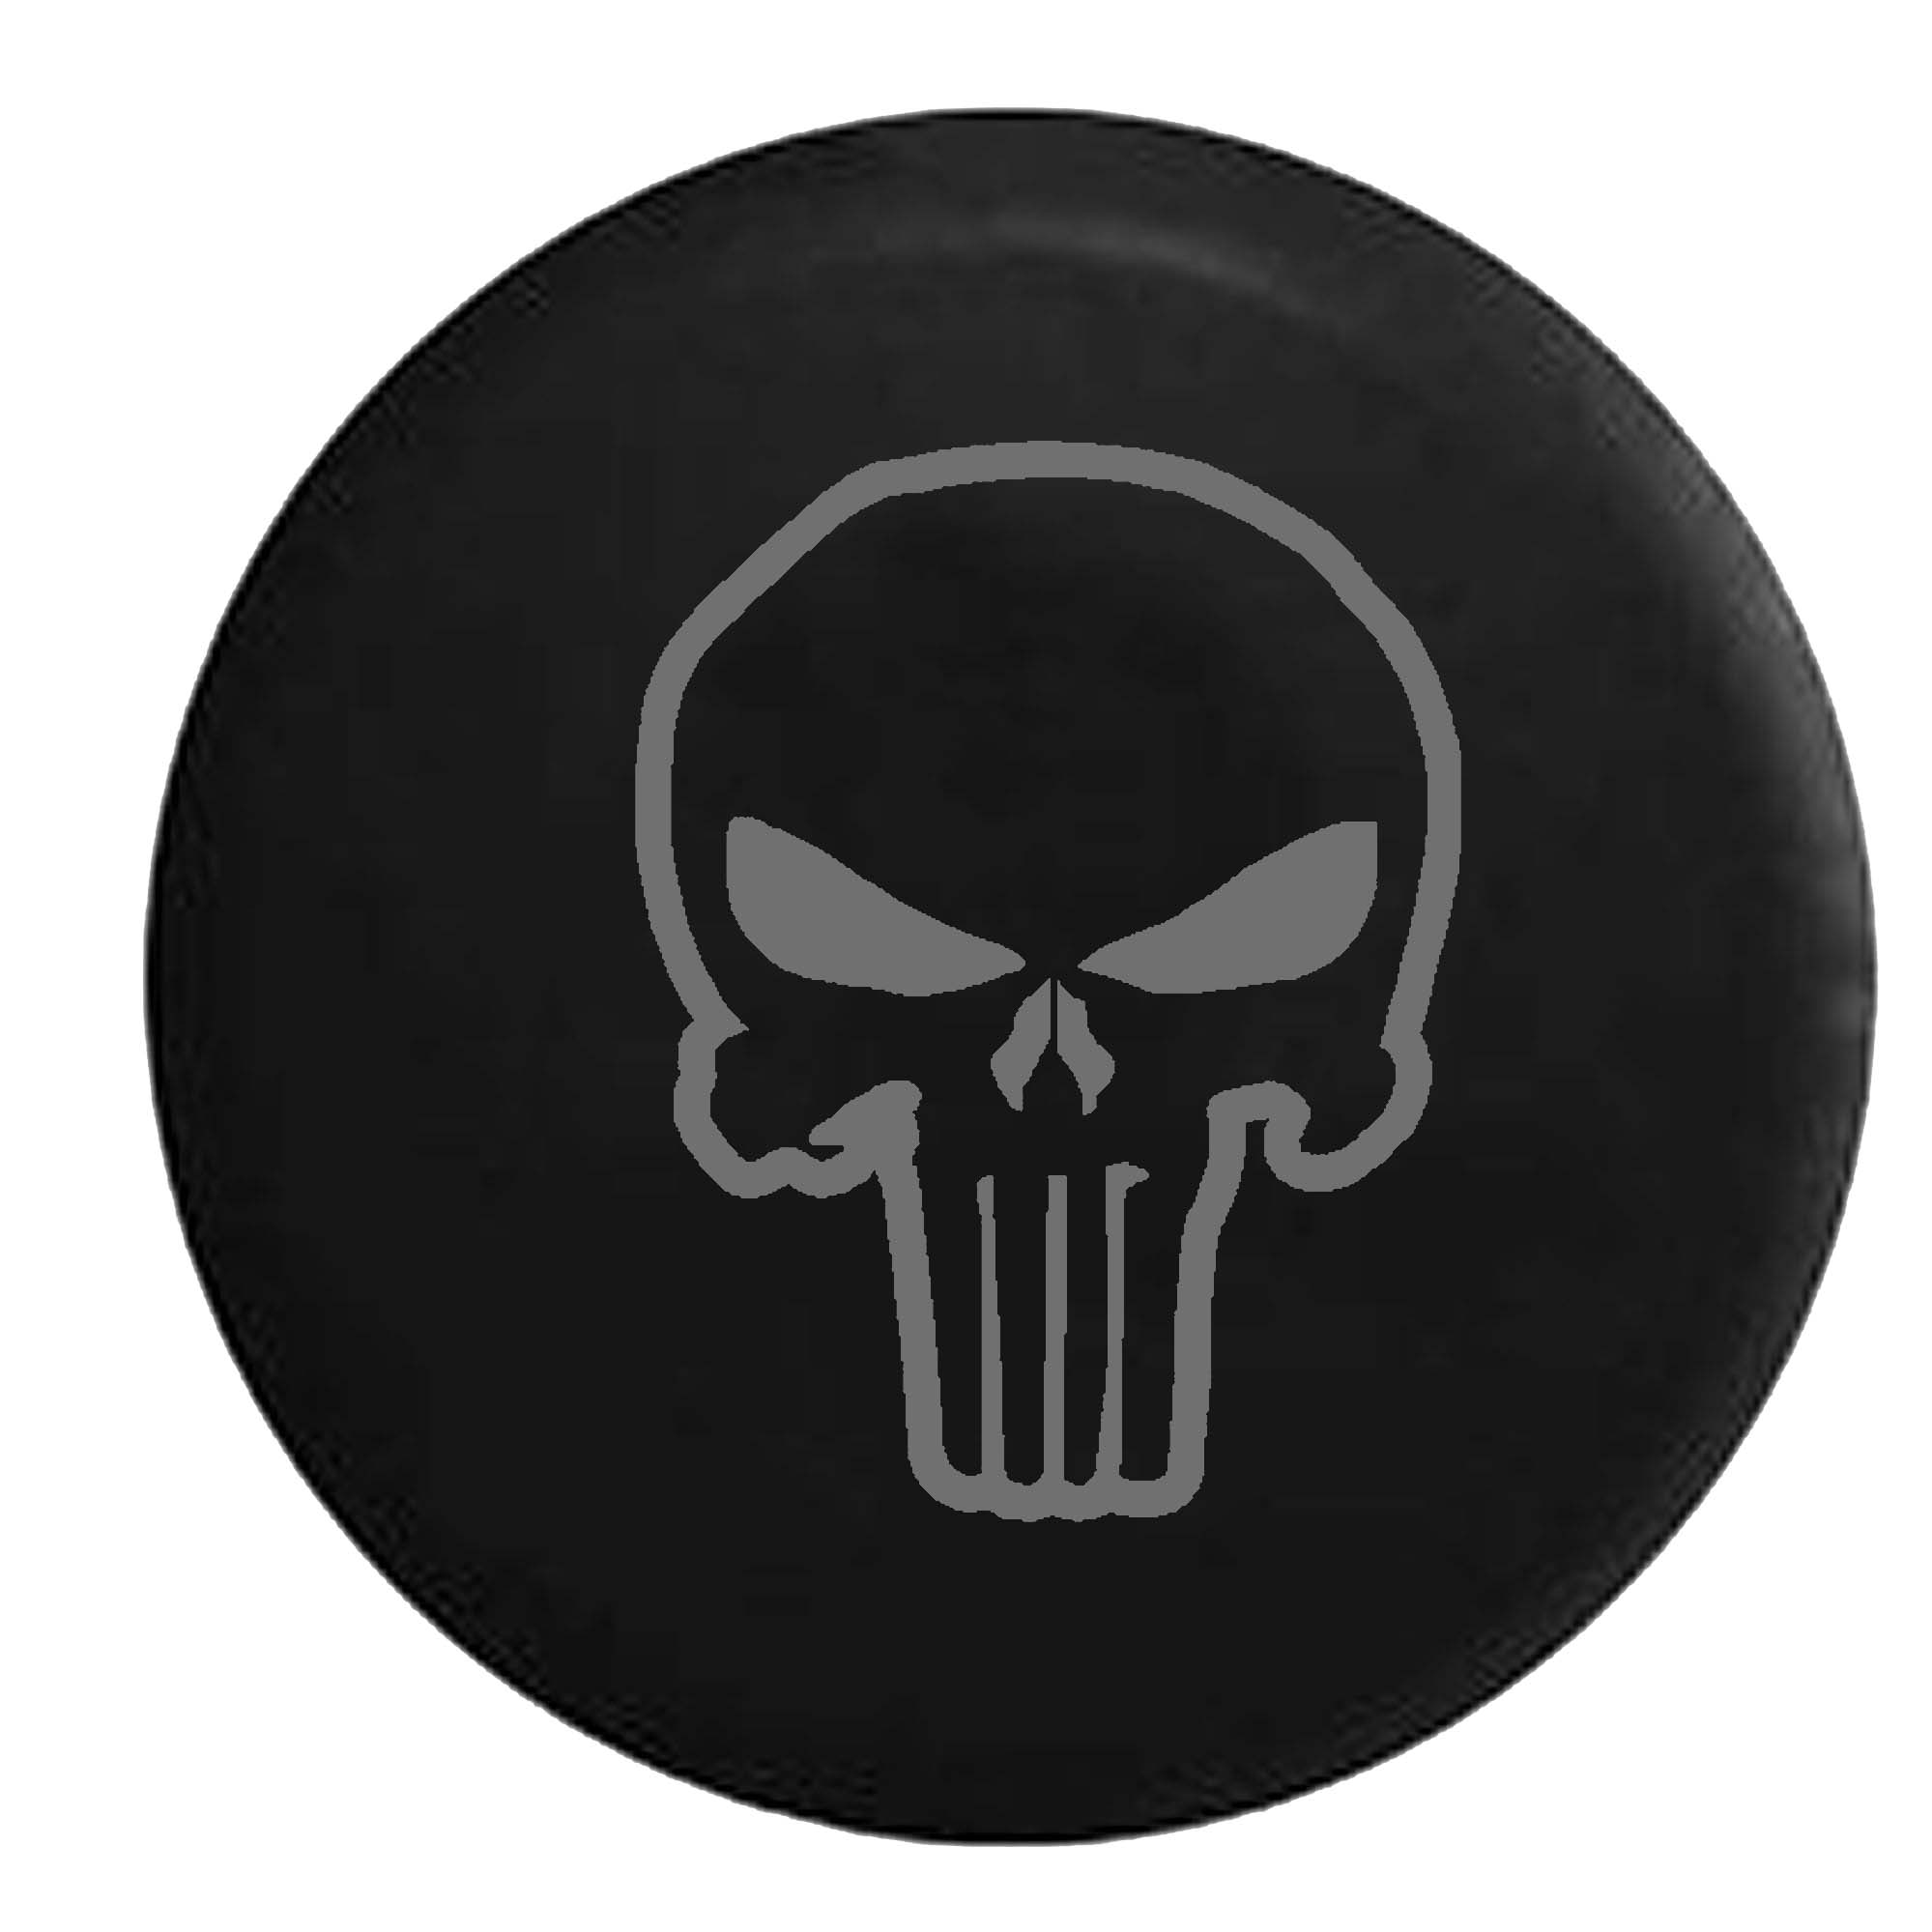 Punisher Skull Shadow Edition Spare Tire Cover Vinyl Stealth Black 31 in